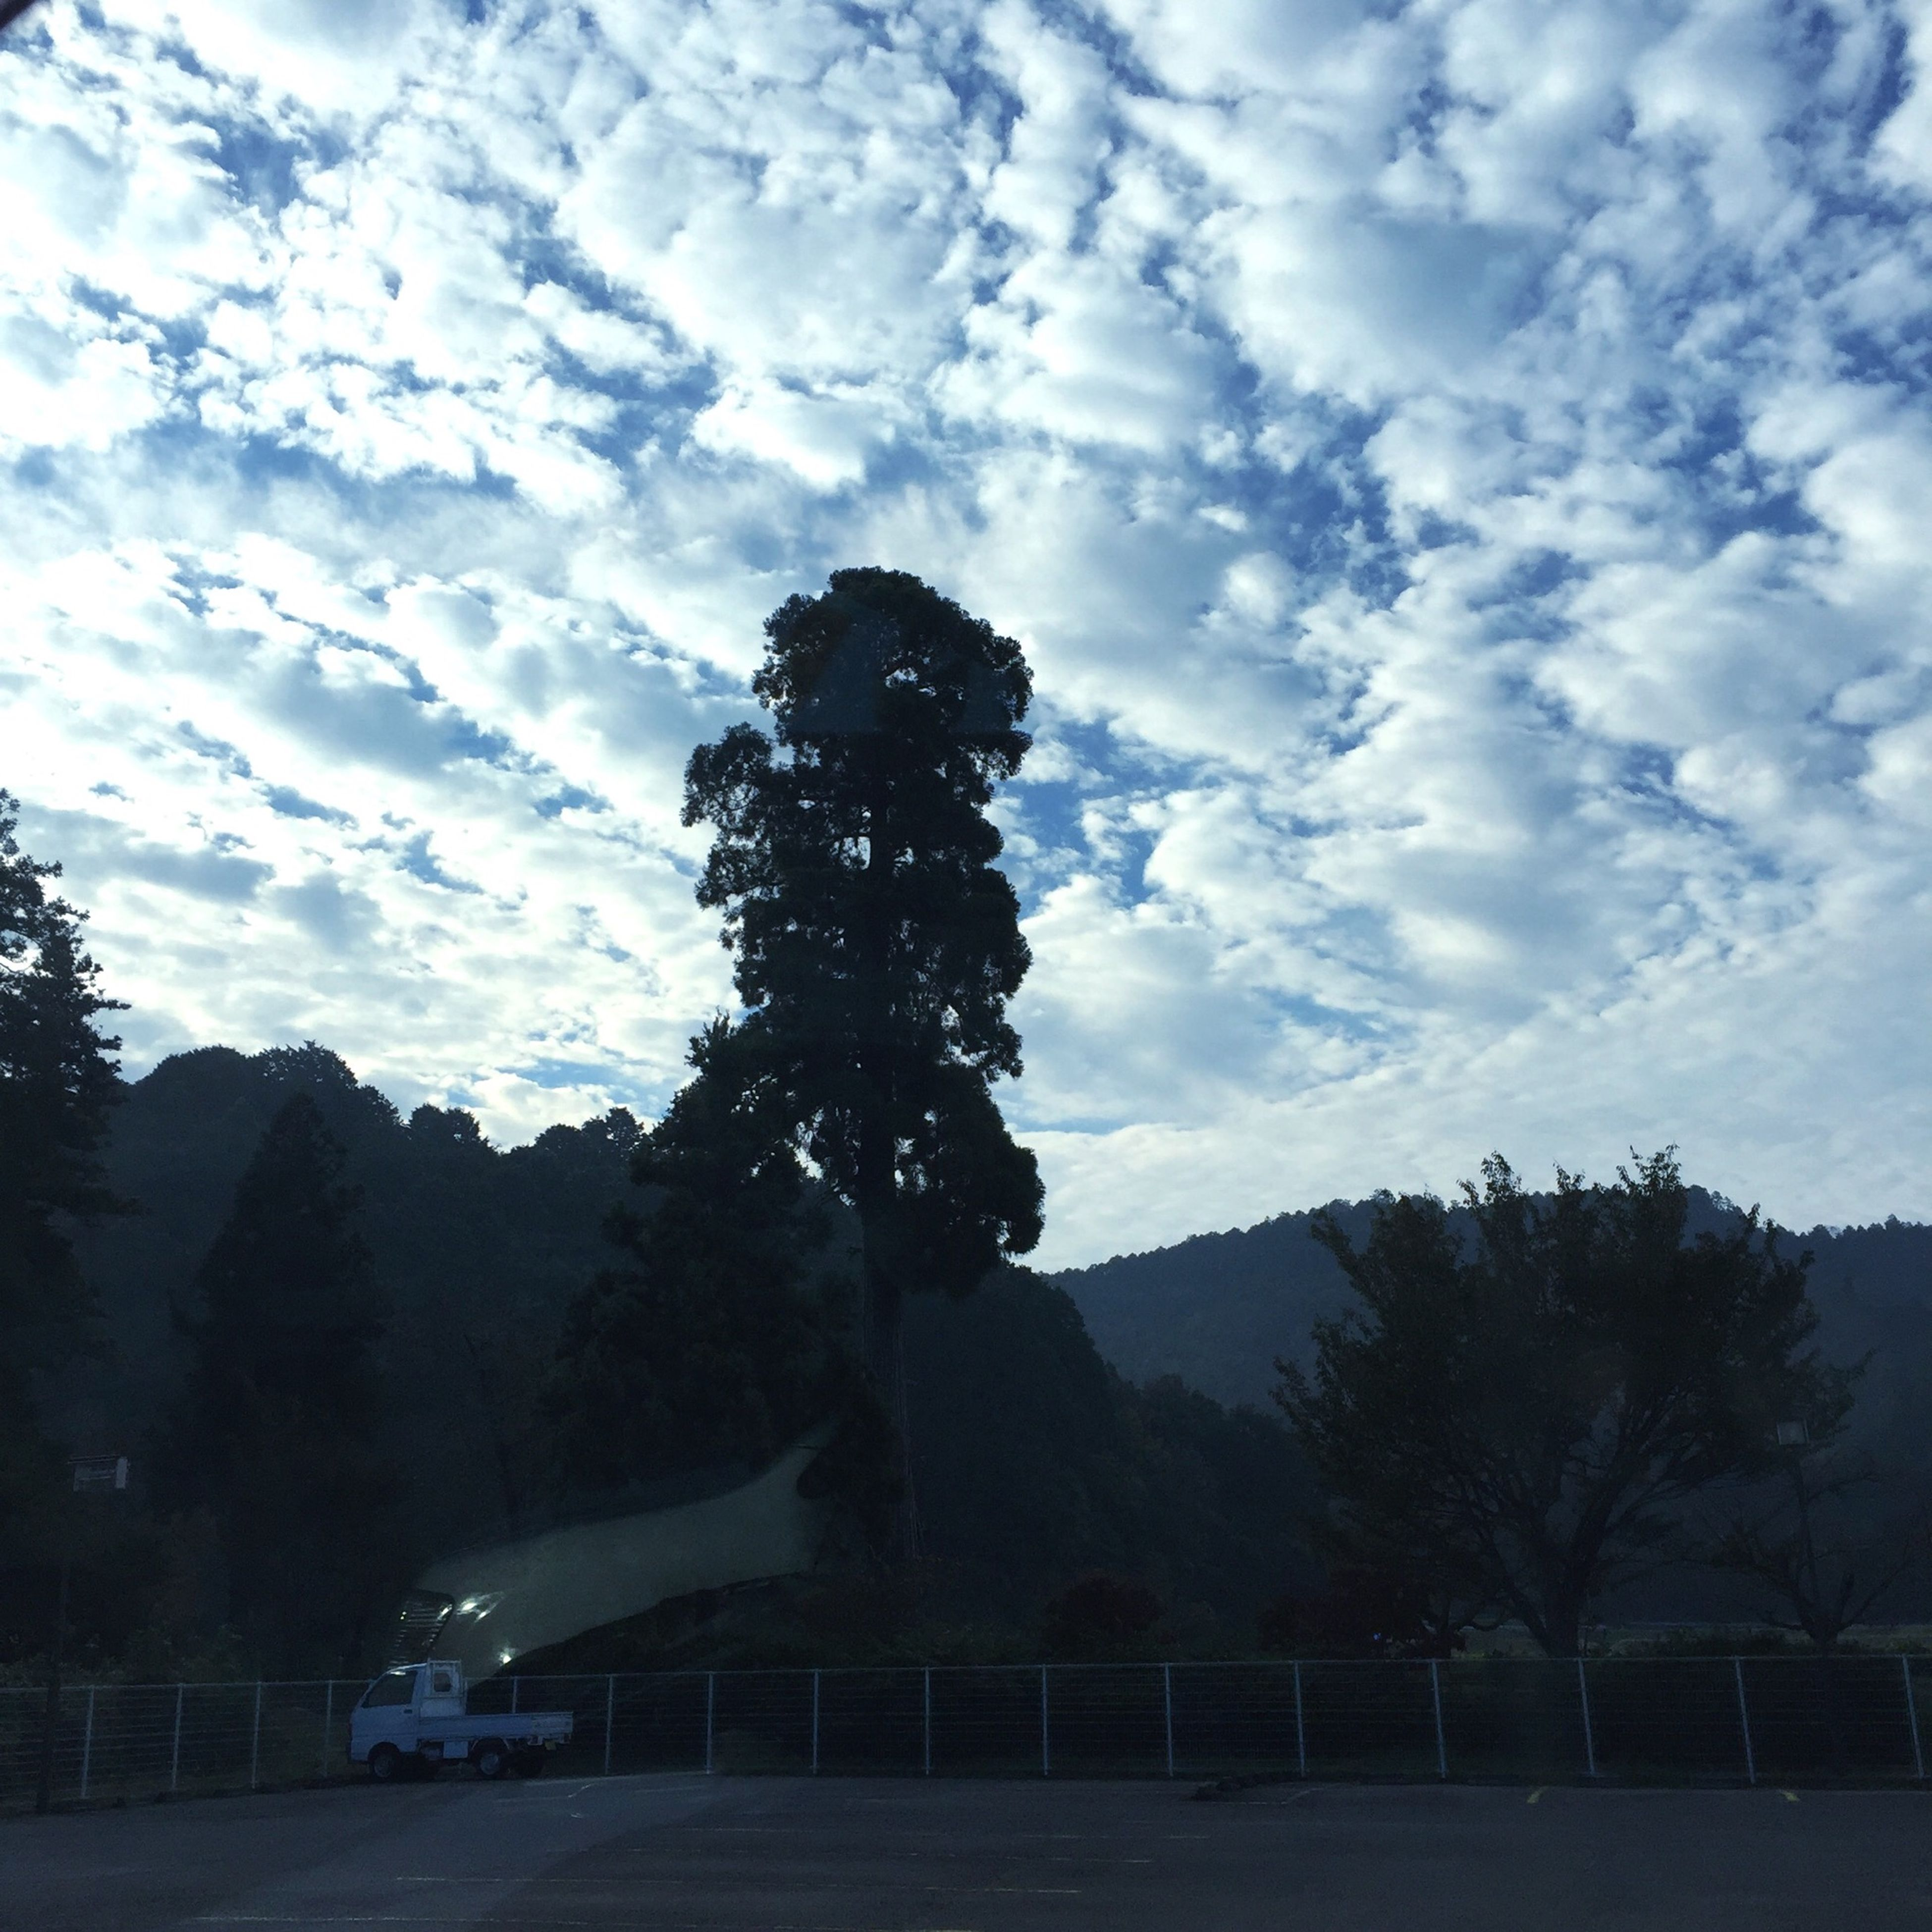 tree, sky, cloud - sky, silhouette, cloud, road, transportation, cloudy, human representation, statue, outdoors, nature, day, sculpture, street, growth, lifestyles, sunlight